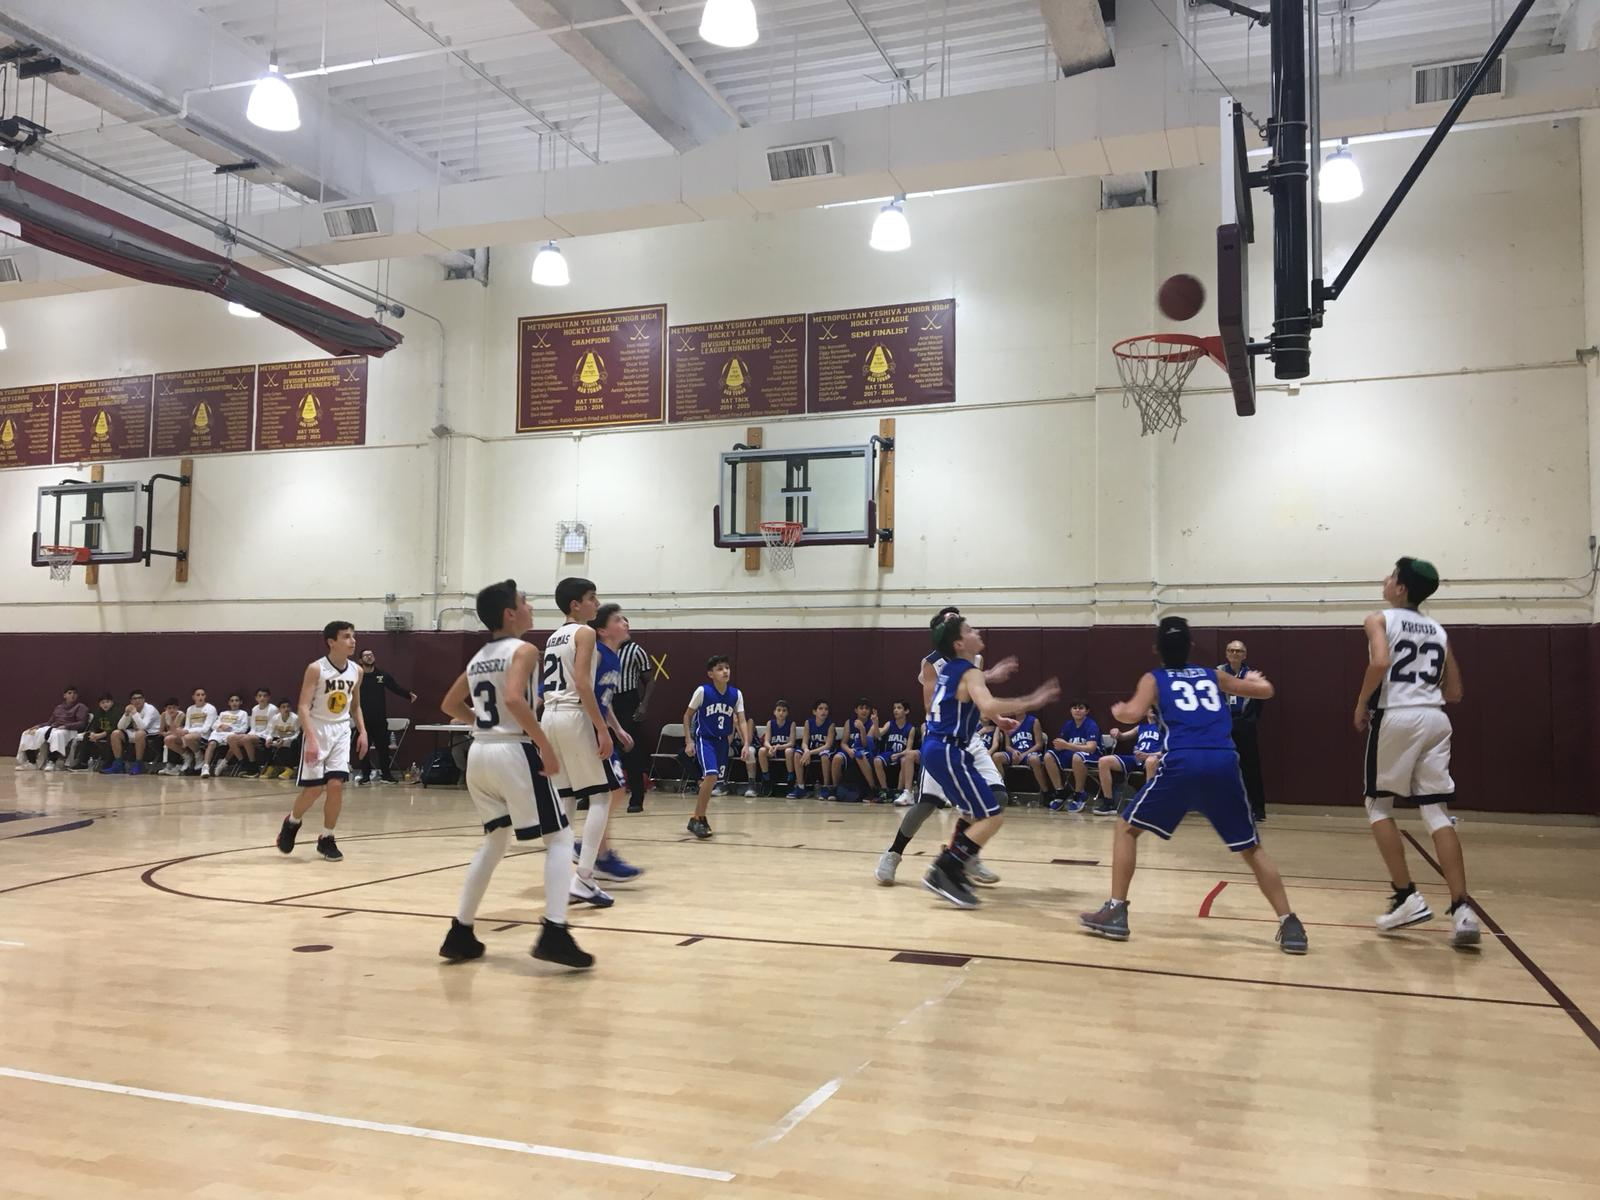 Students from Hebrew Academy of Long Beach play basketball against students from Magen David Yeshiva